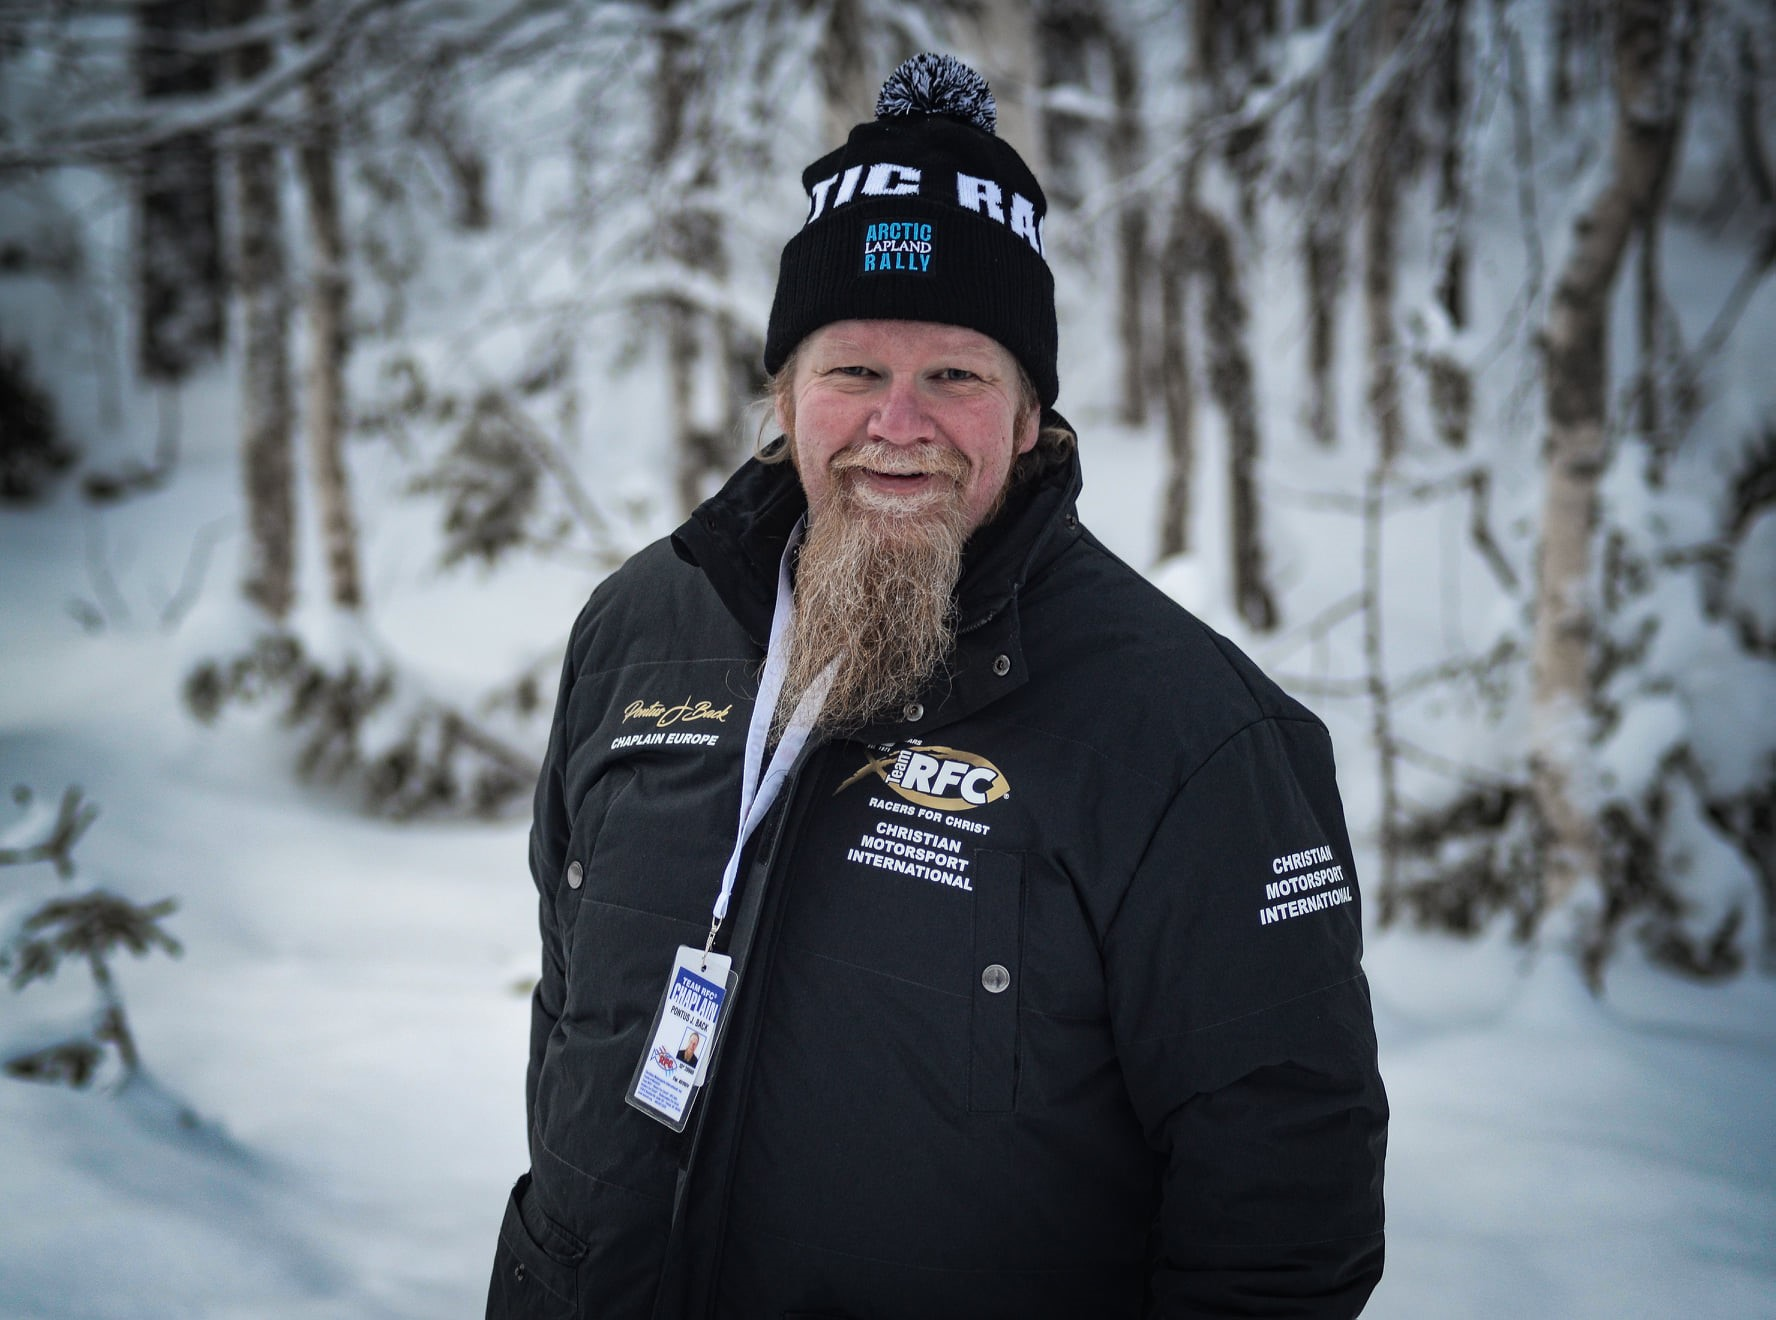 Chaplain Pontus smiling as he serves at a snow event.